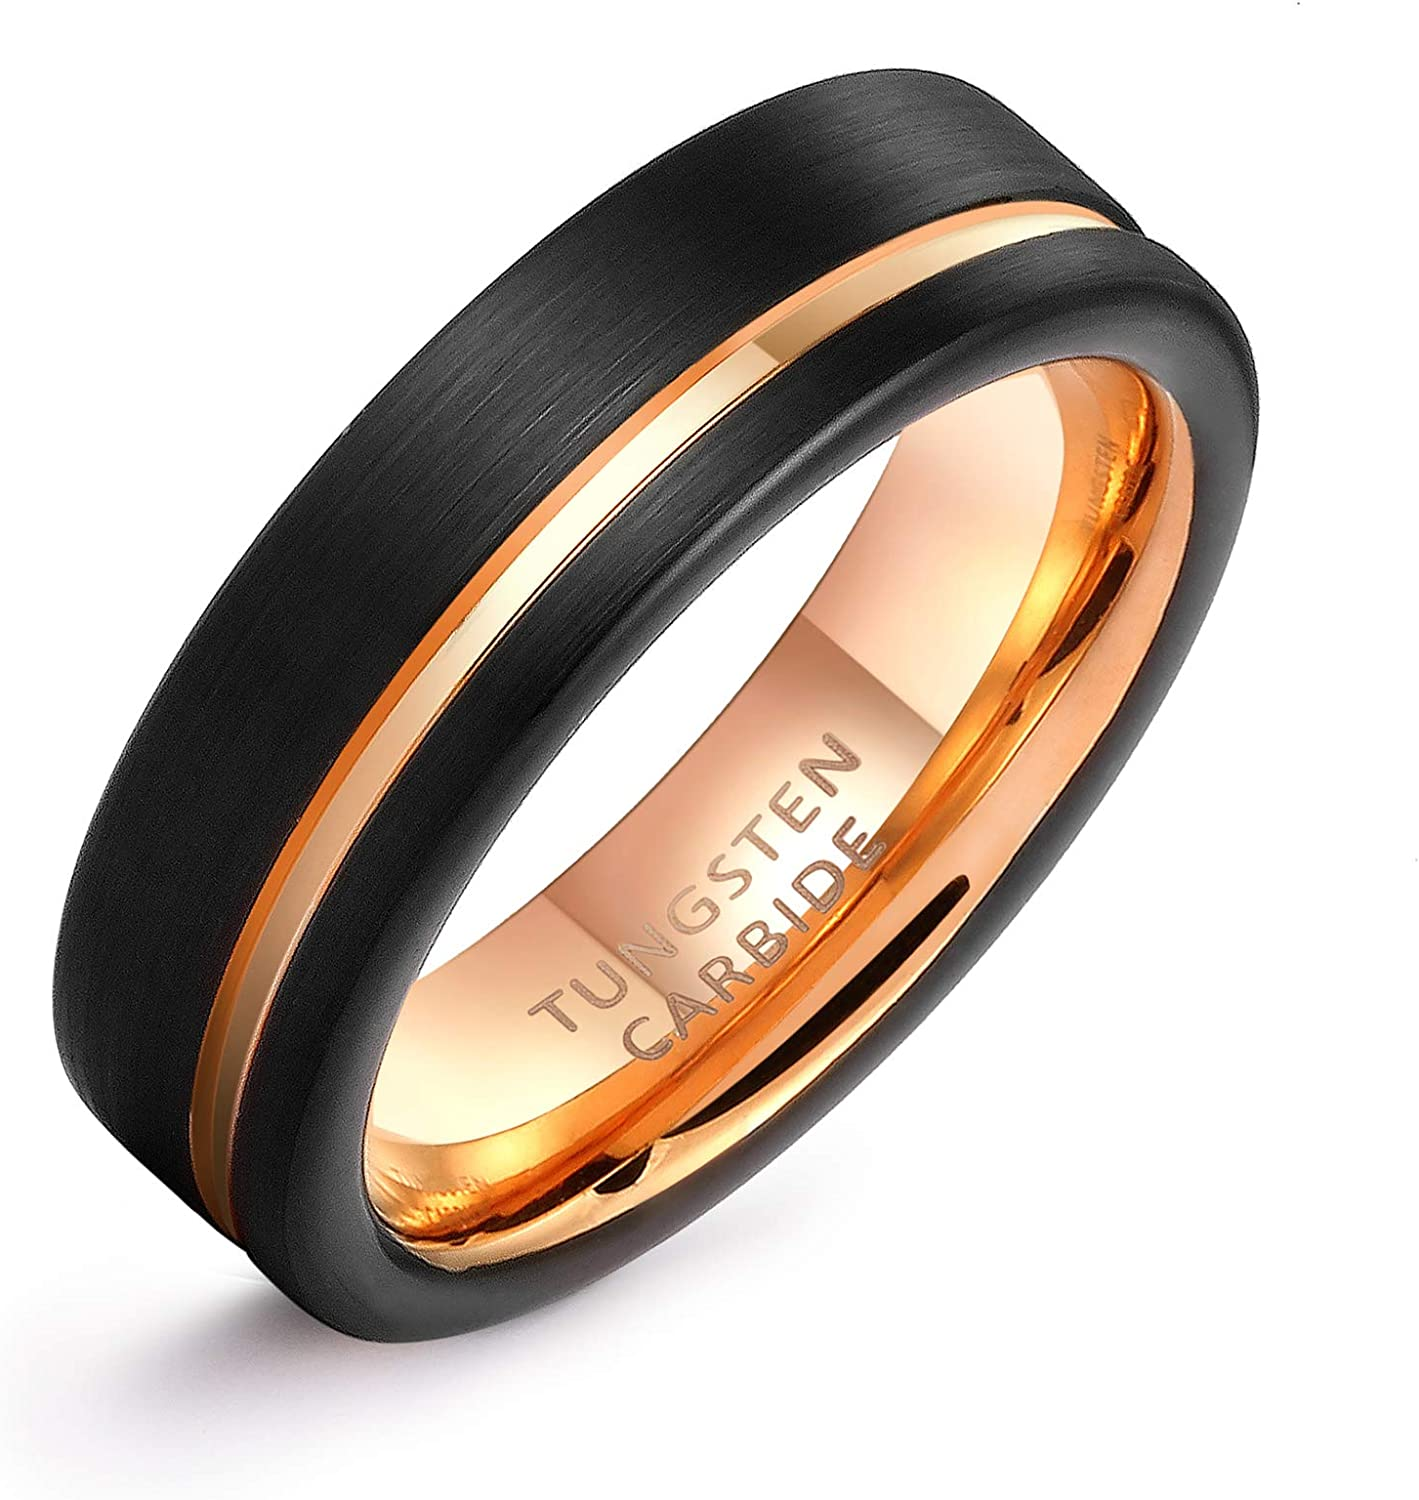 LerchPhi Personalized Engraved Promise Ring for Couples Engagement Wedding Bands Couples Matching Rings Black Tungsten Carbide Satin Finish Rose Gold Comfort-fit